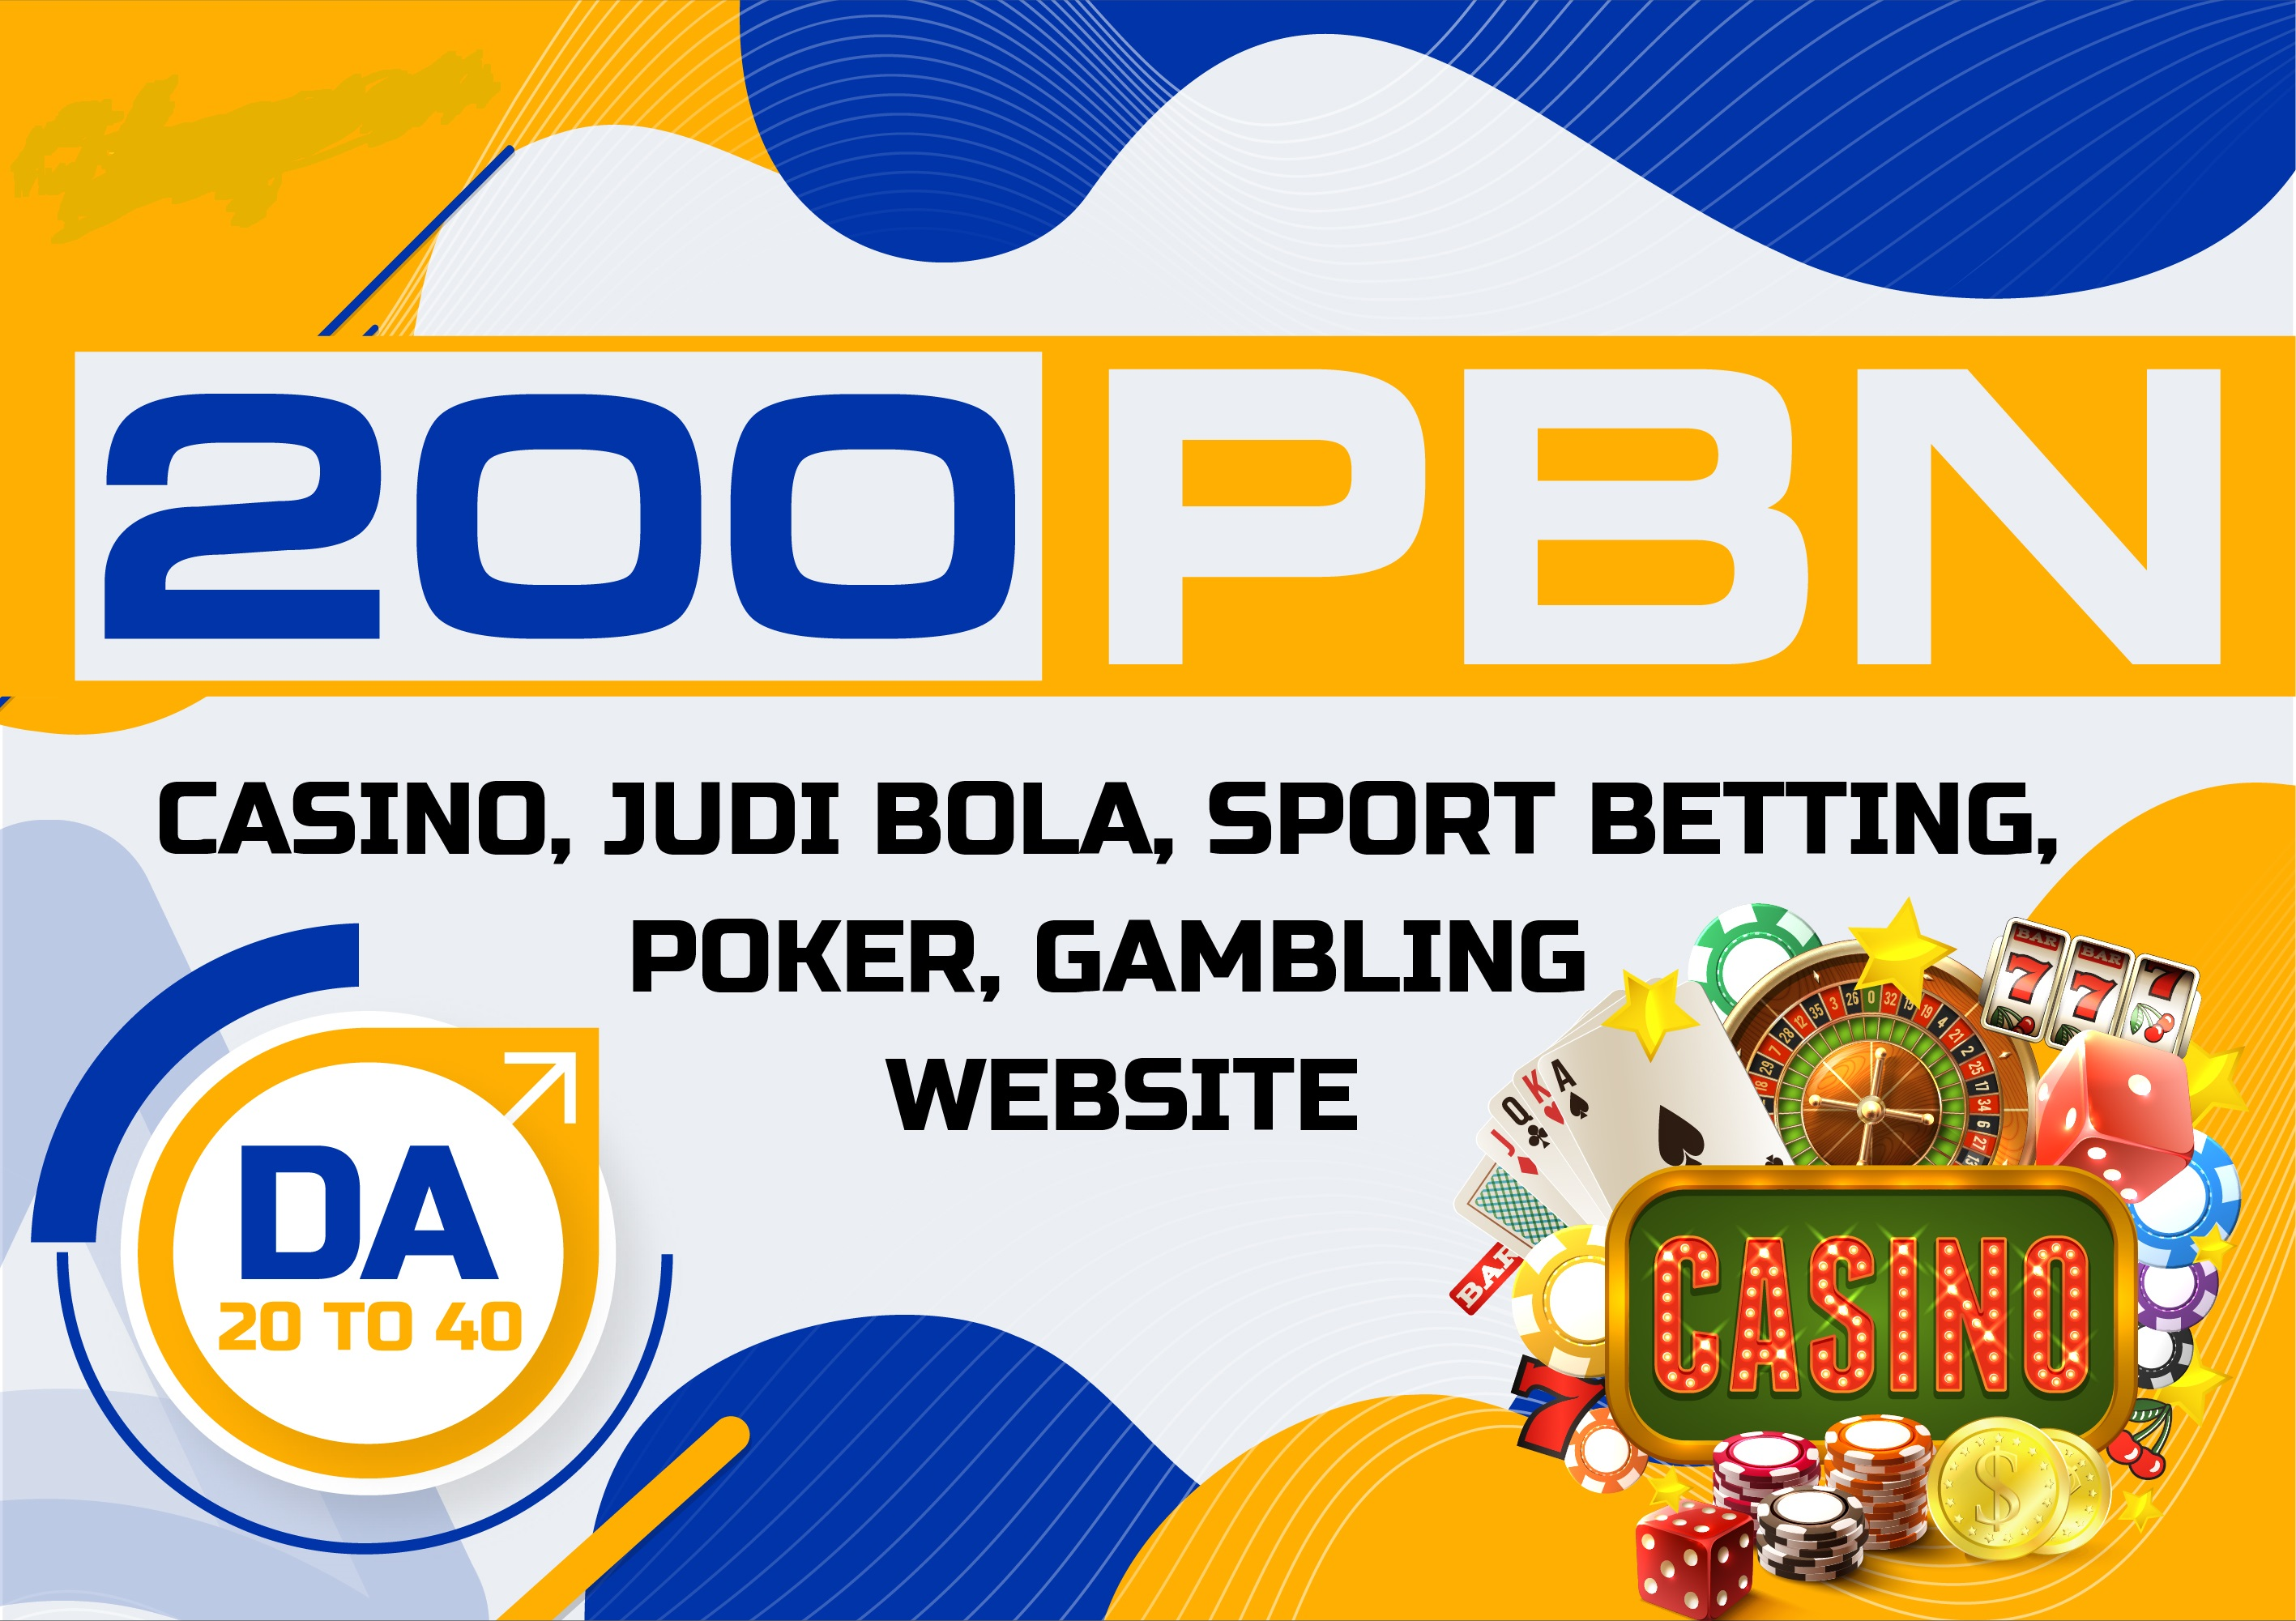 Quality 200 CASINO/ Poker/Gambling/Judi bola/ With Unique Domian Pbn backlinks